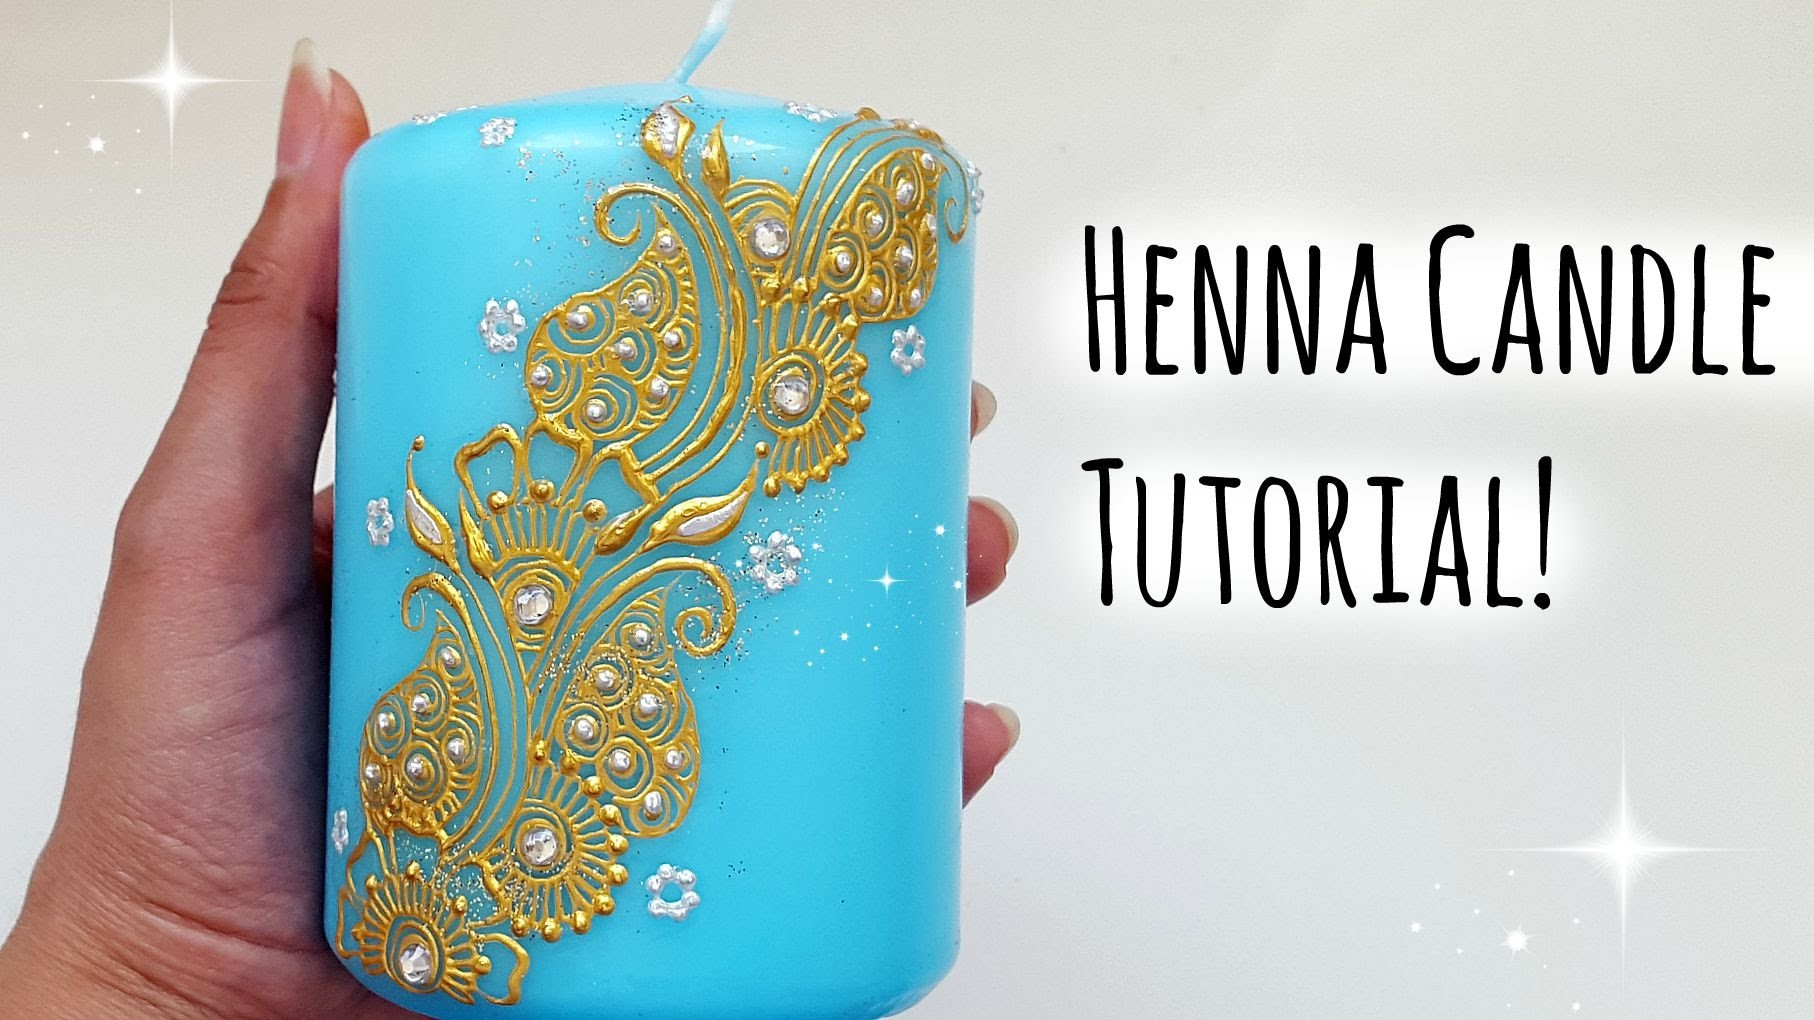 Henna Candle Tutorial |Henna Art by Aroosa